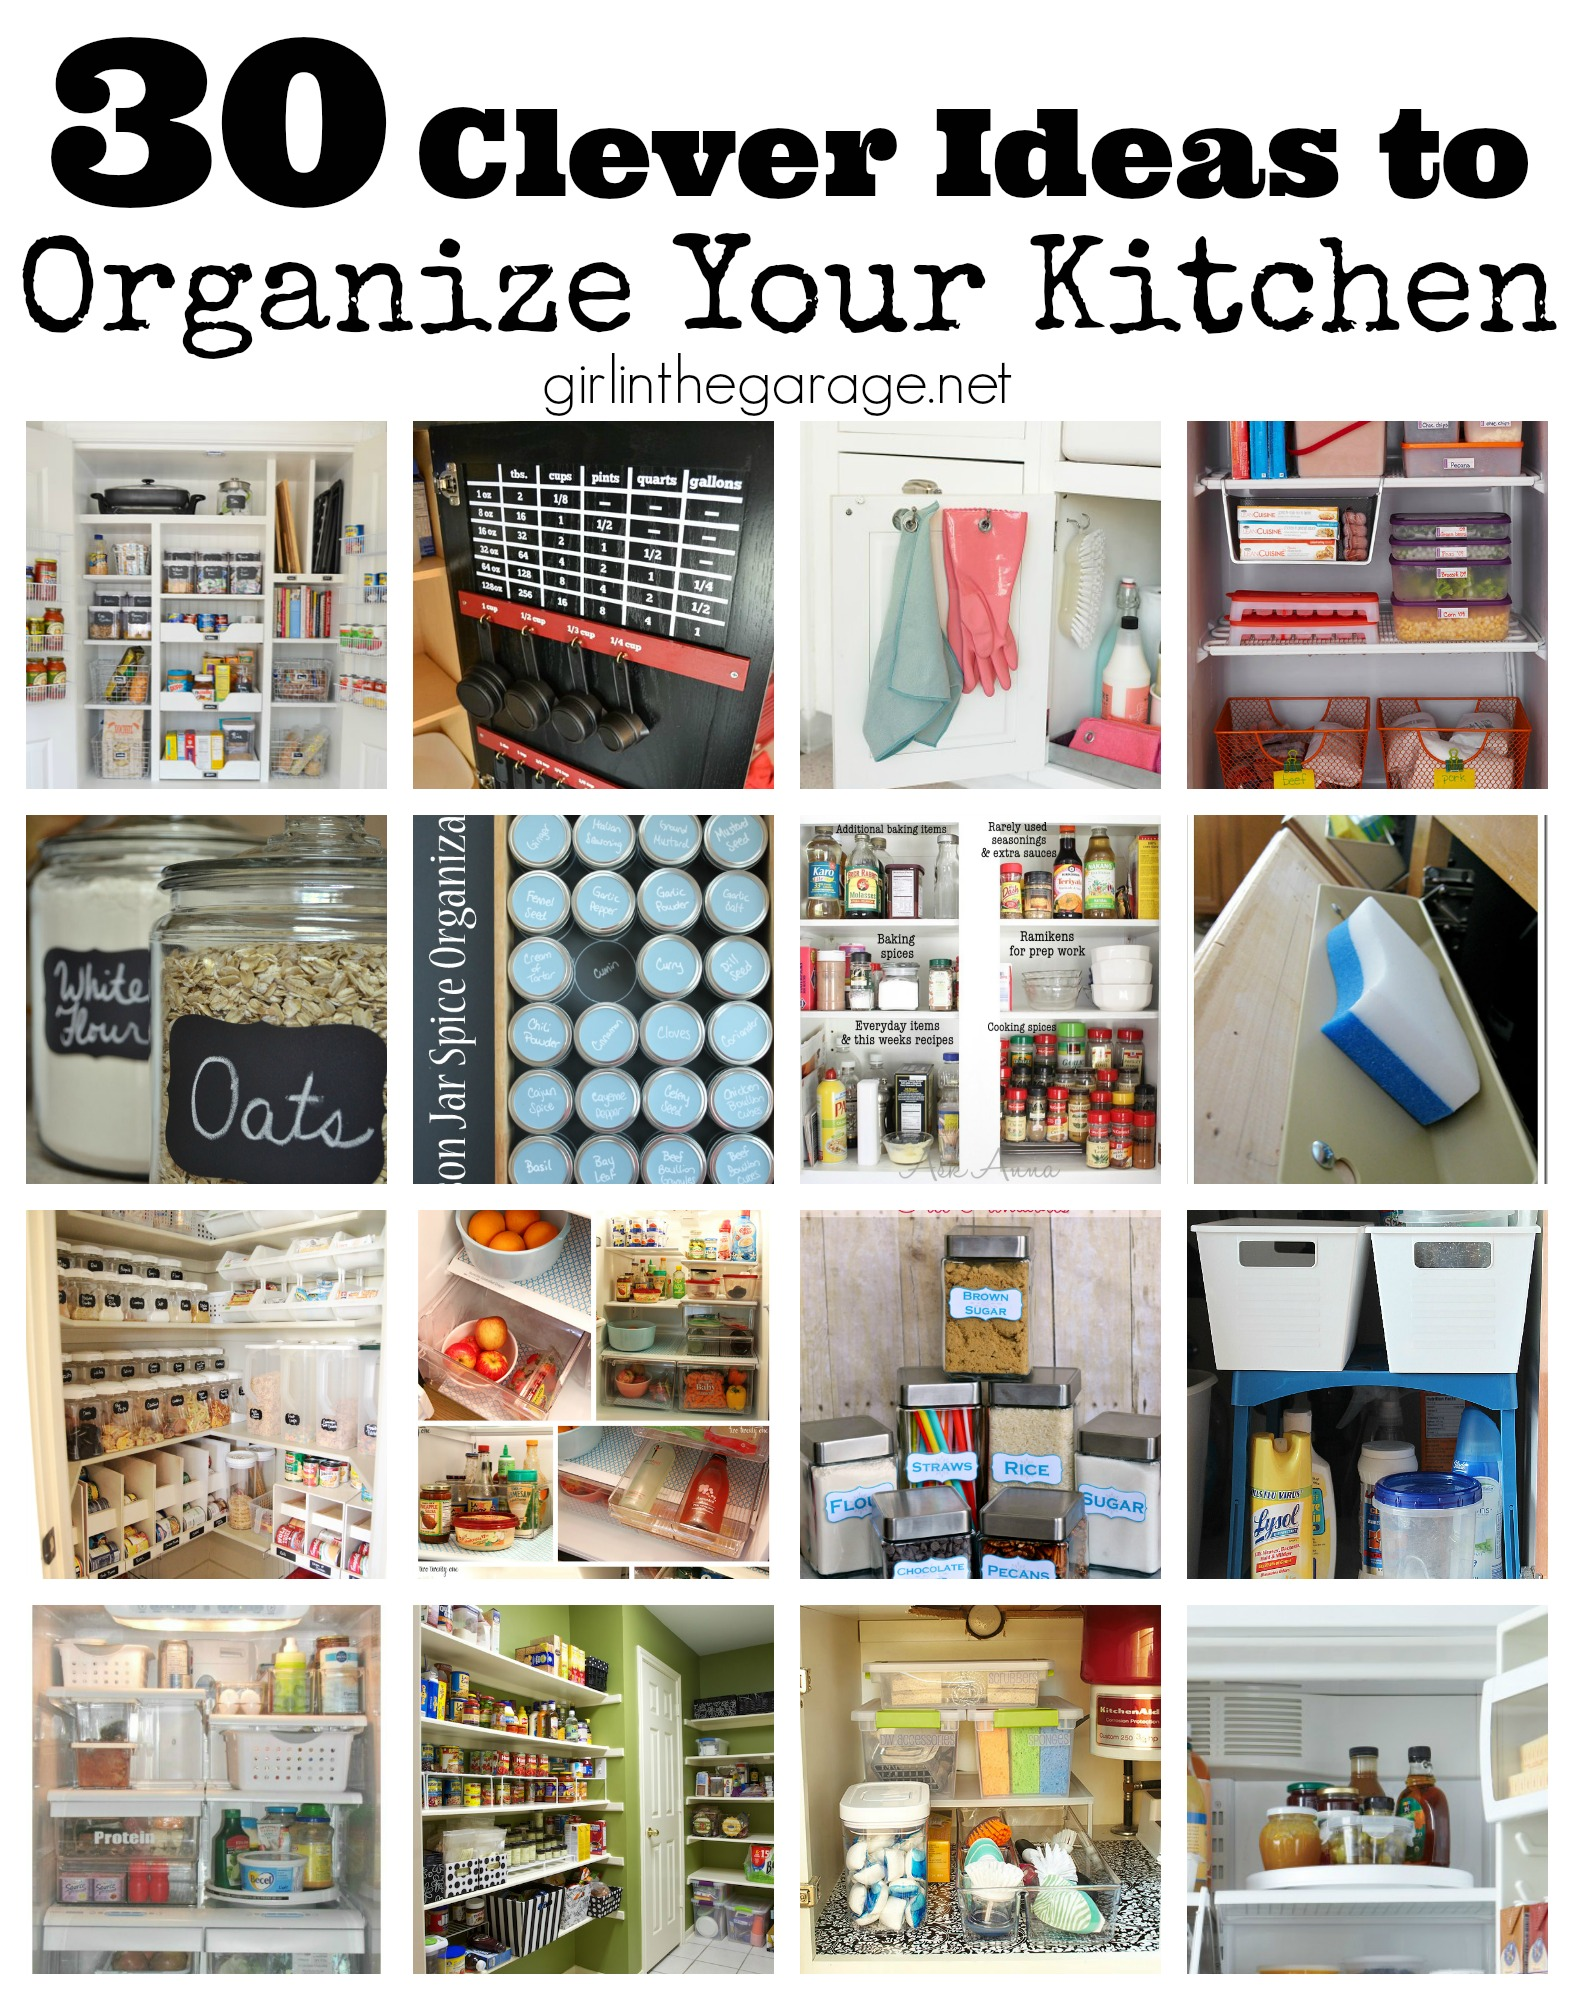 Kitchen Organize 30 Clever Ideas To Organize Your Kitchen Girl In The Garage